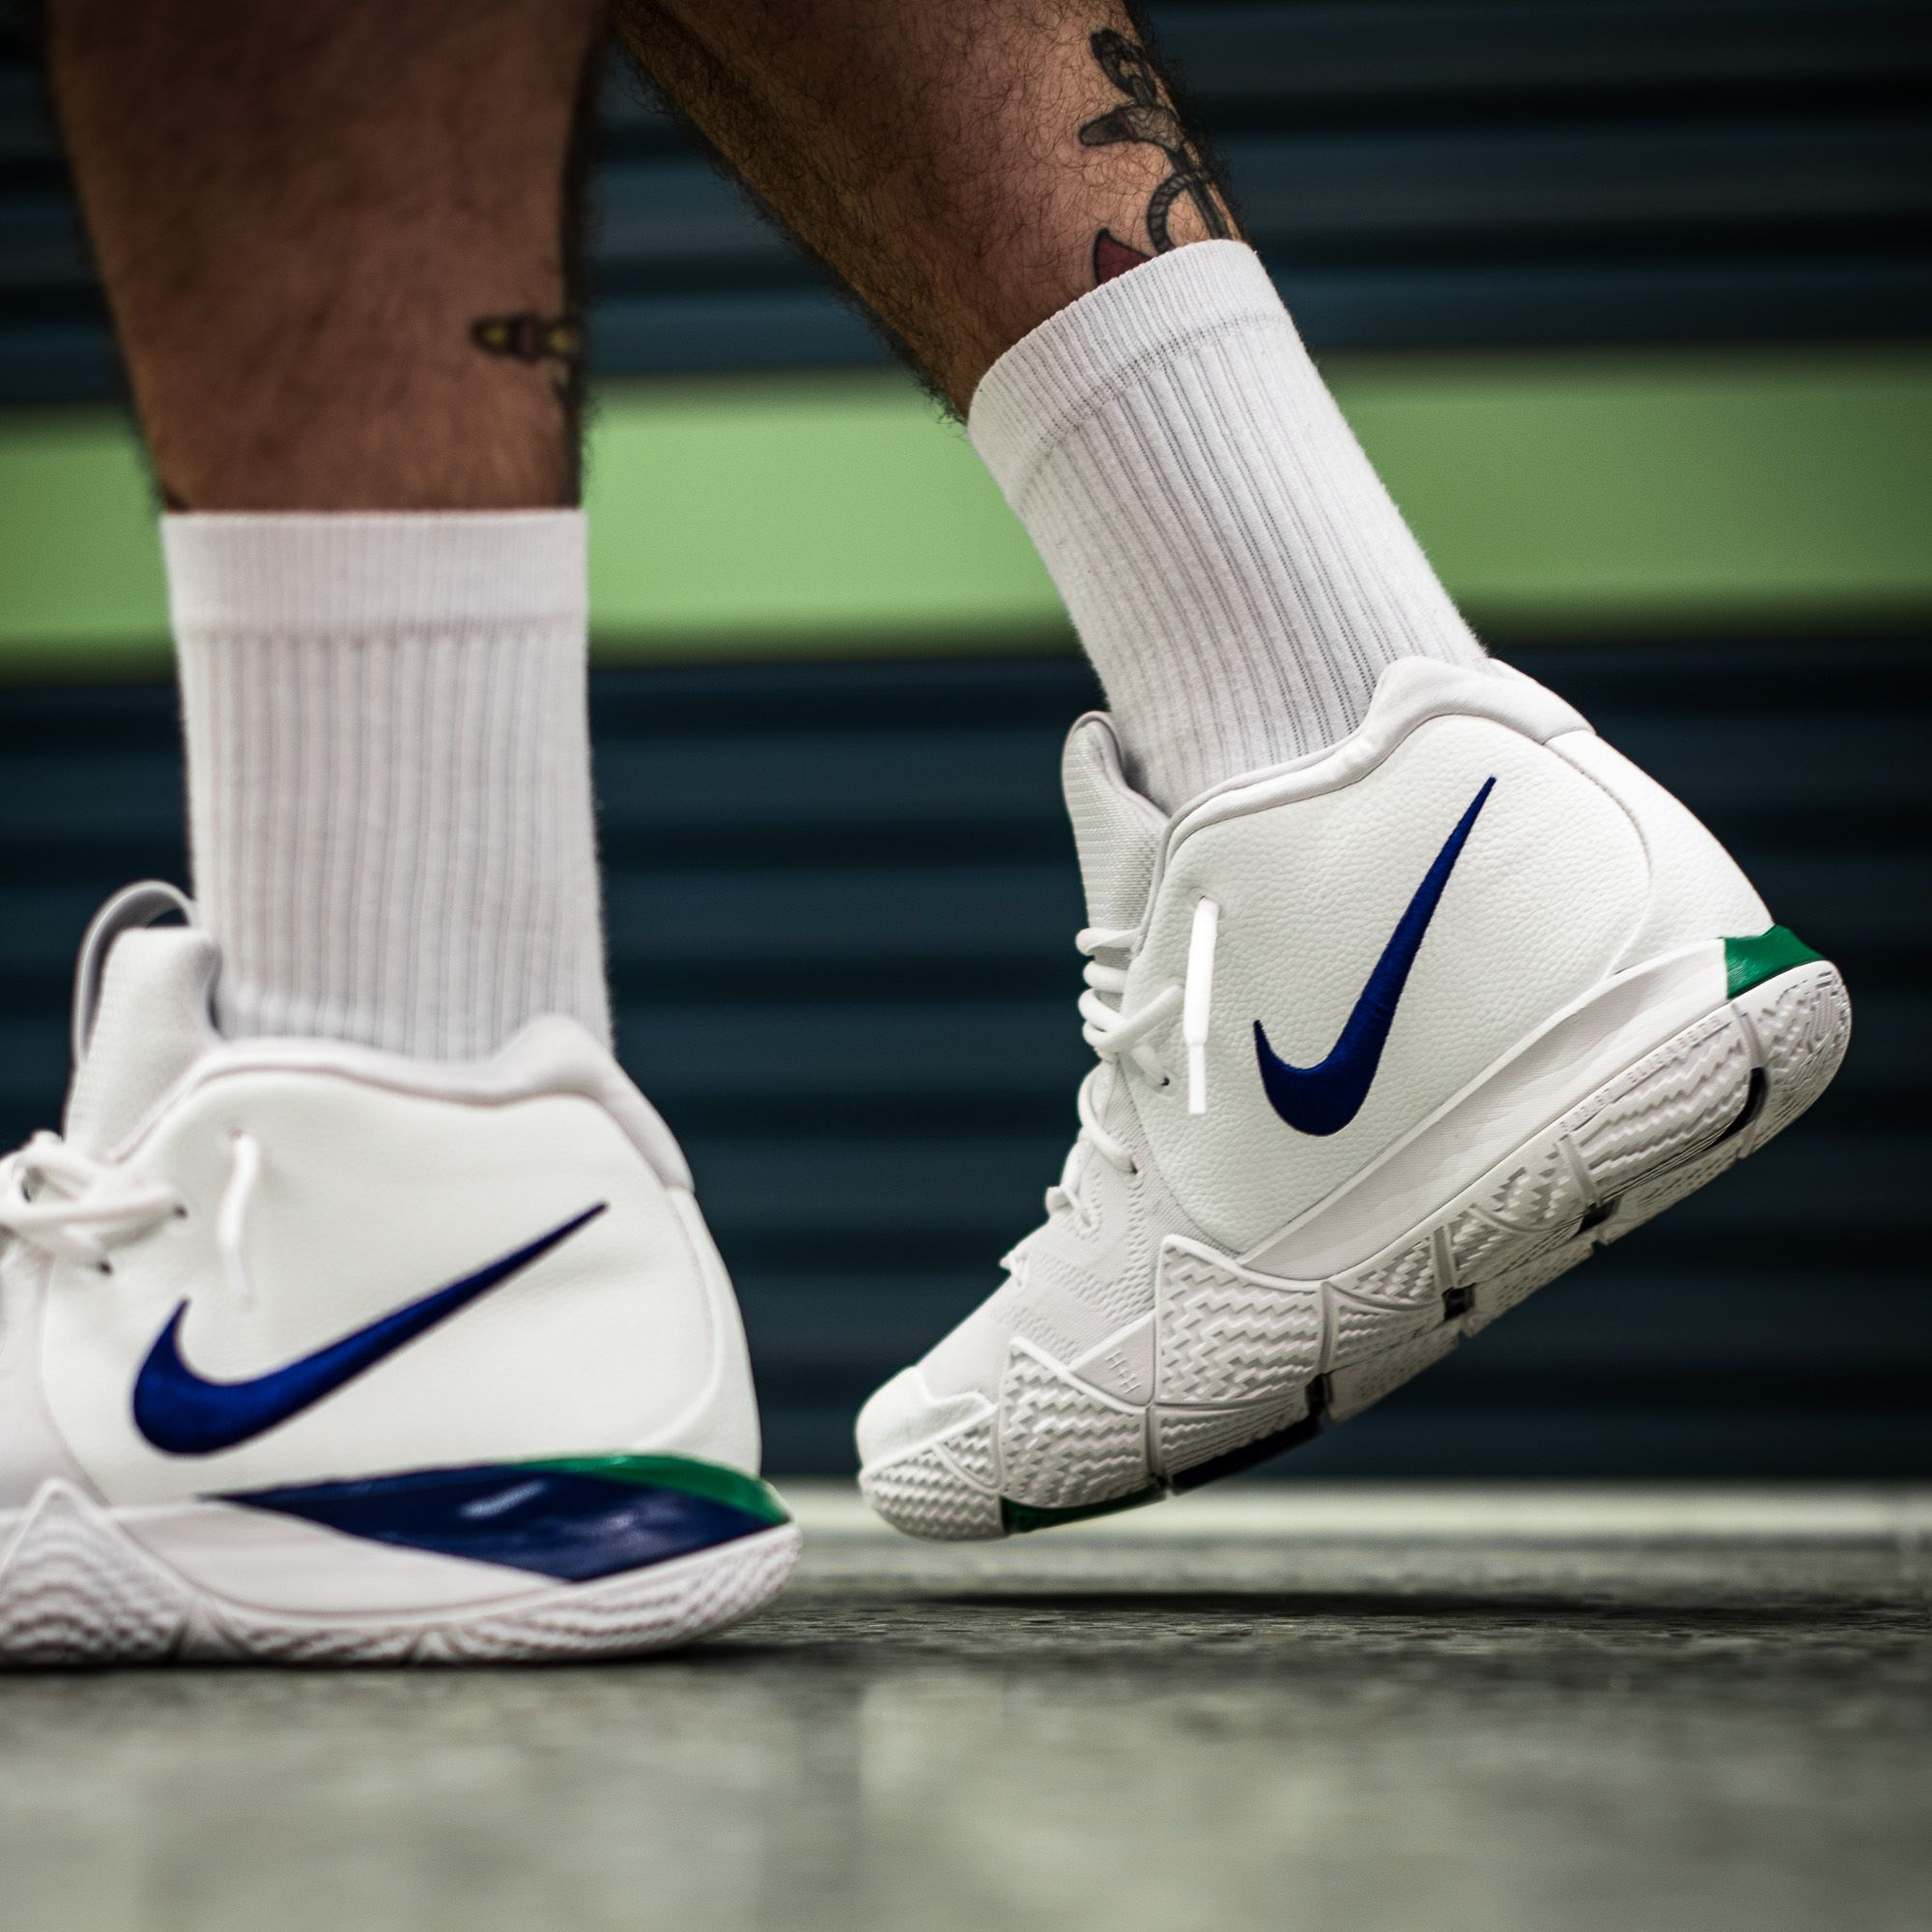 65fa54217425 Dominate the game like Uncle Drew himself with a pair of those Nike Kyrie 4